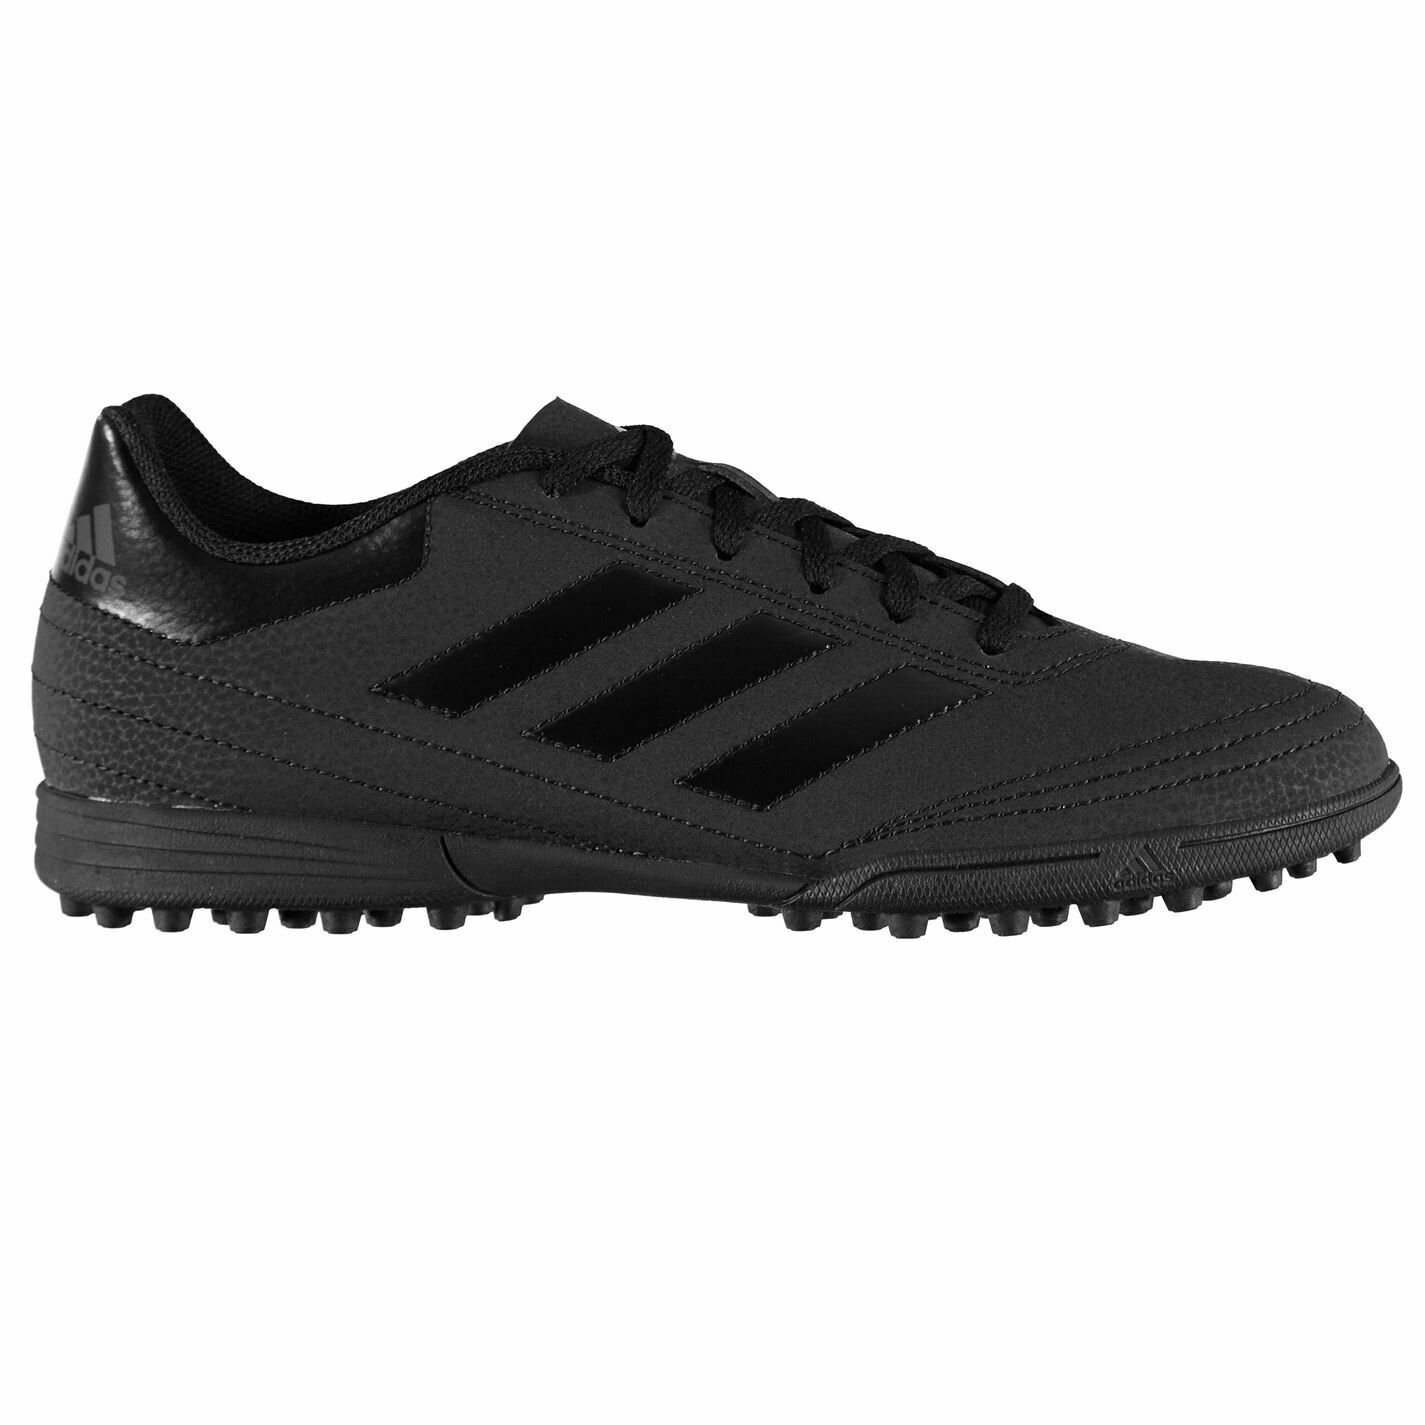 adidas Mens Goletto Astro Turf Trainers Football Boots Lace Up Padded Ankle